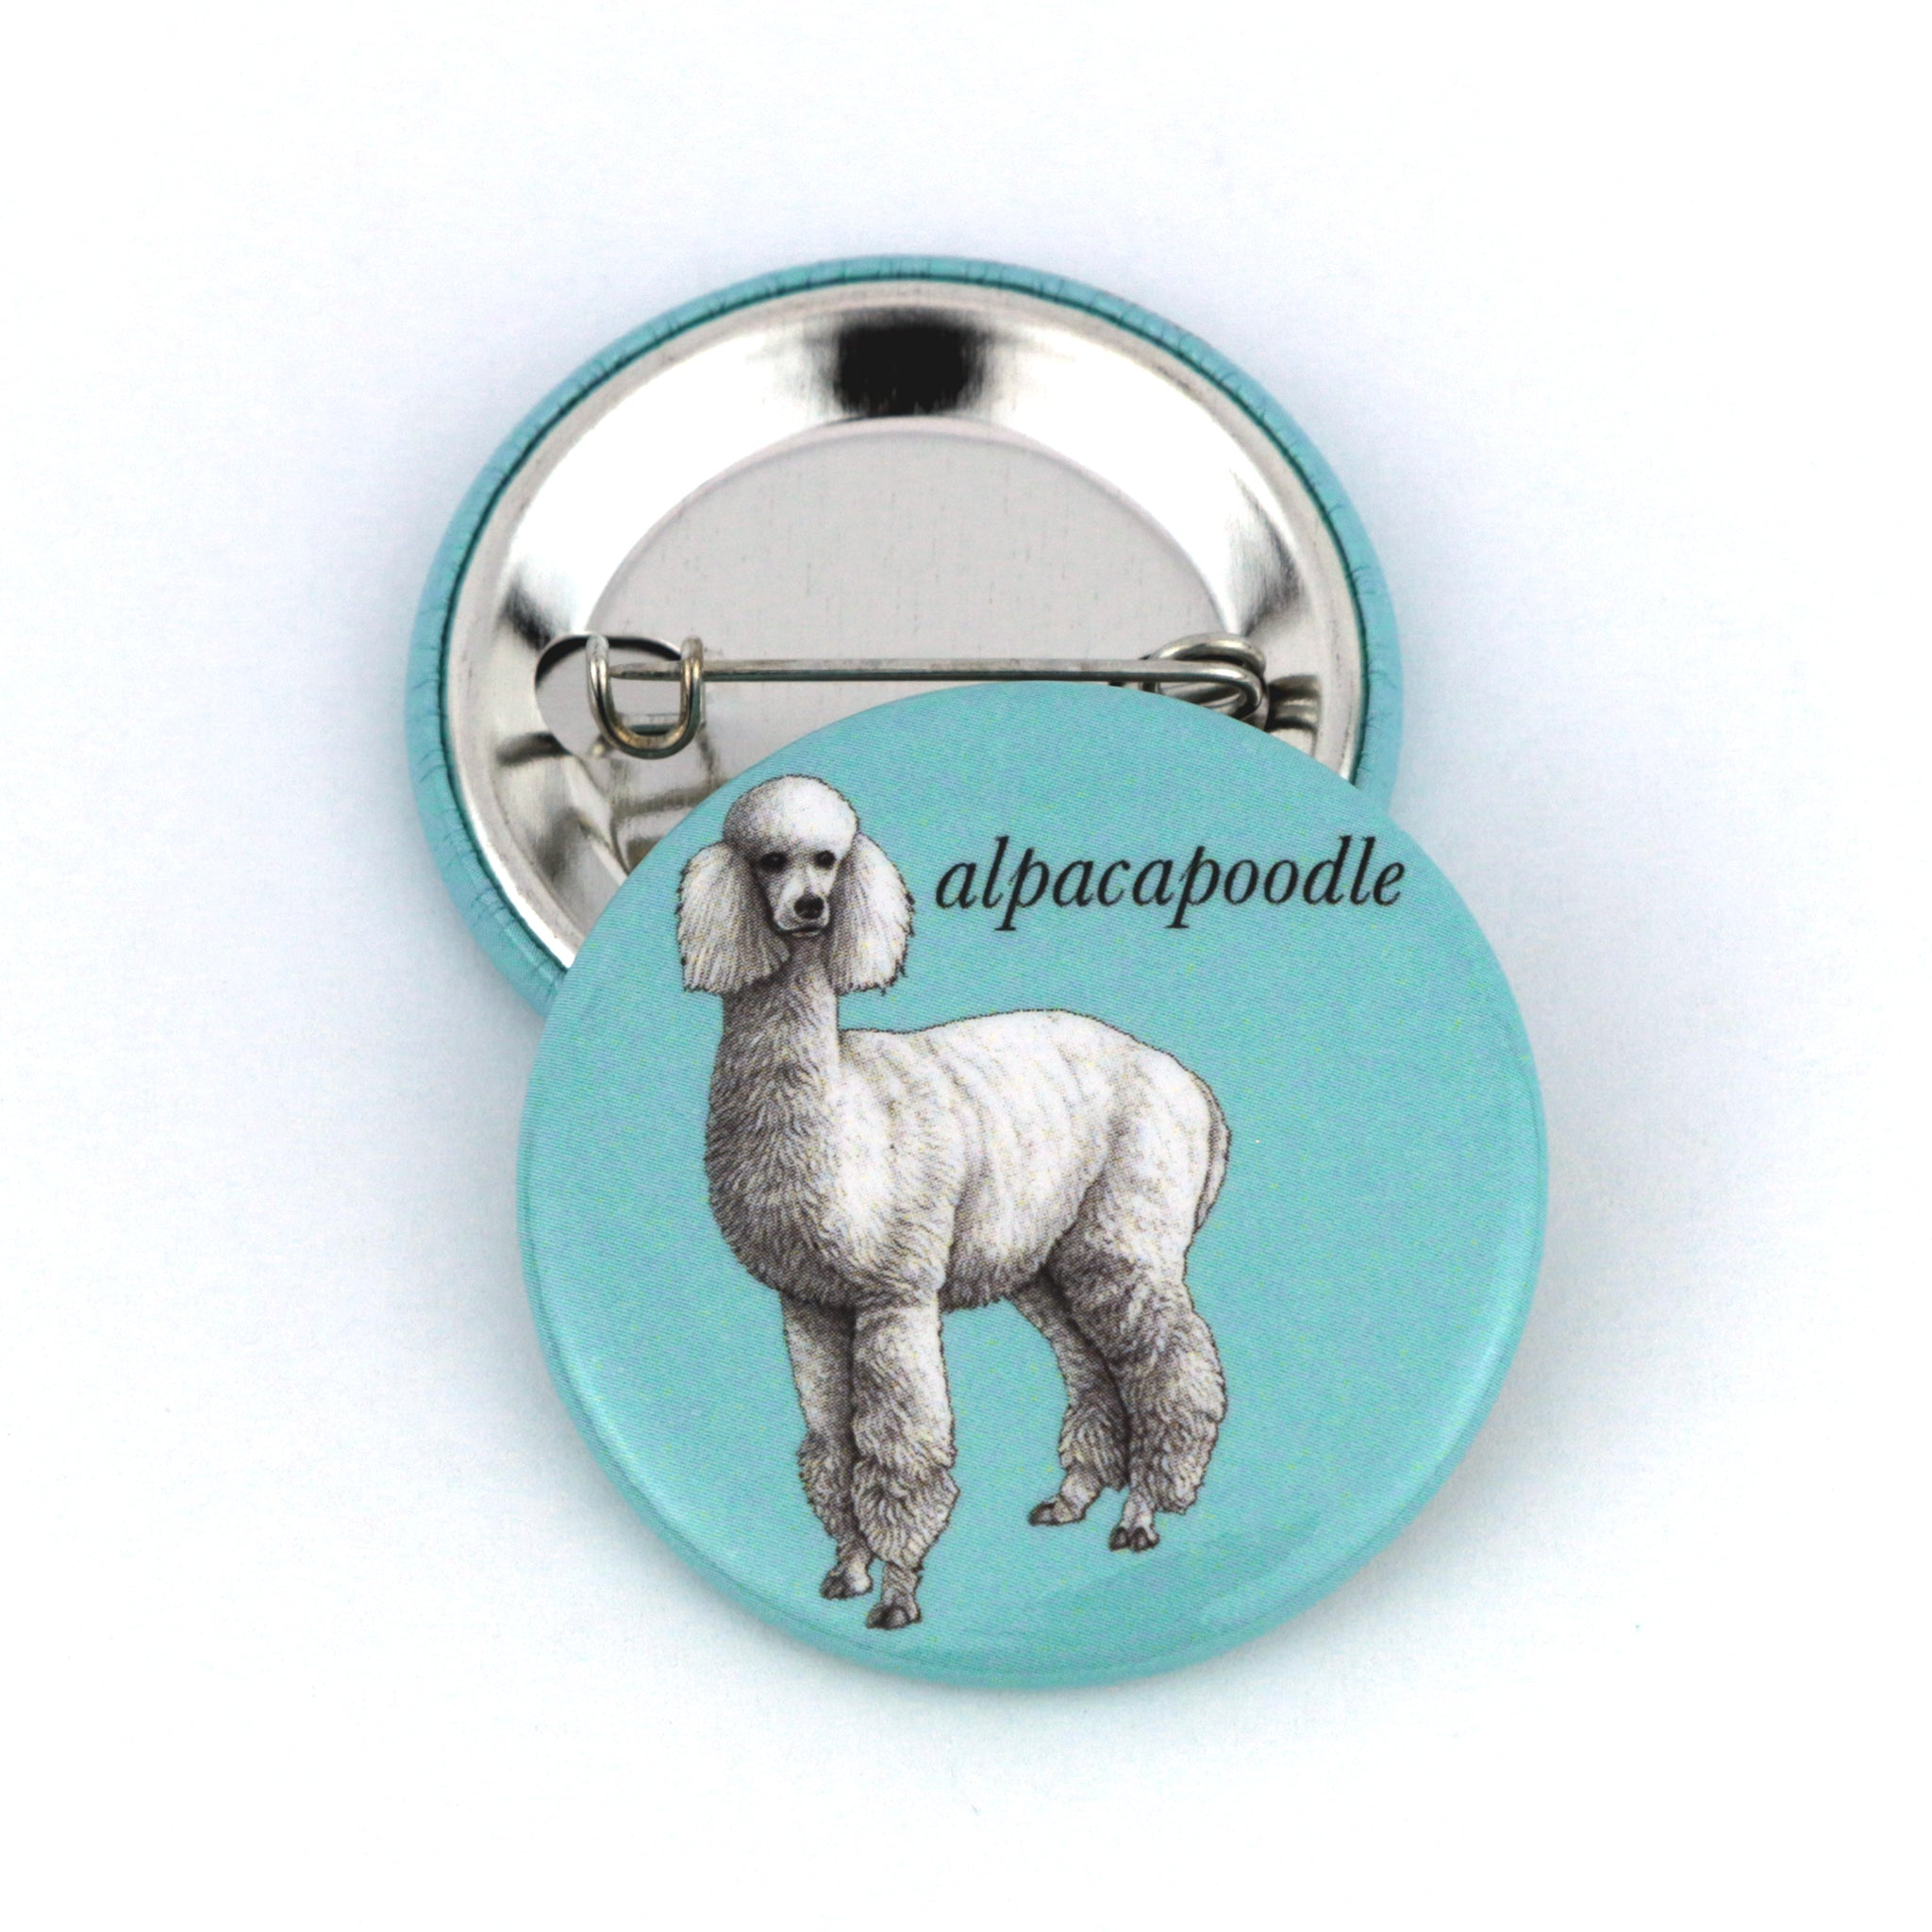 "Alpacapoodle 1.5"" Pinback Button"